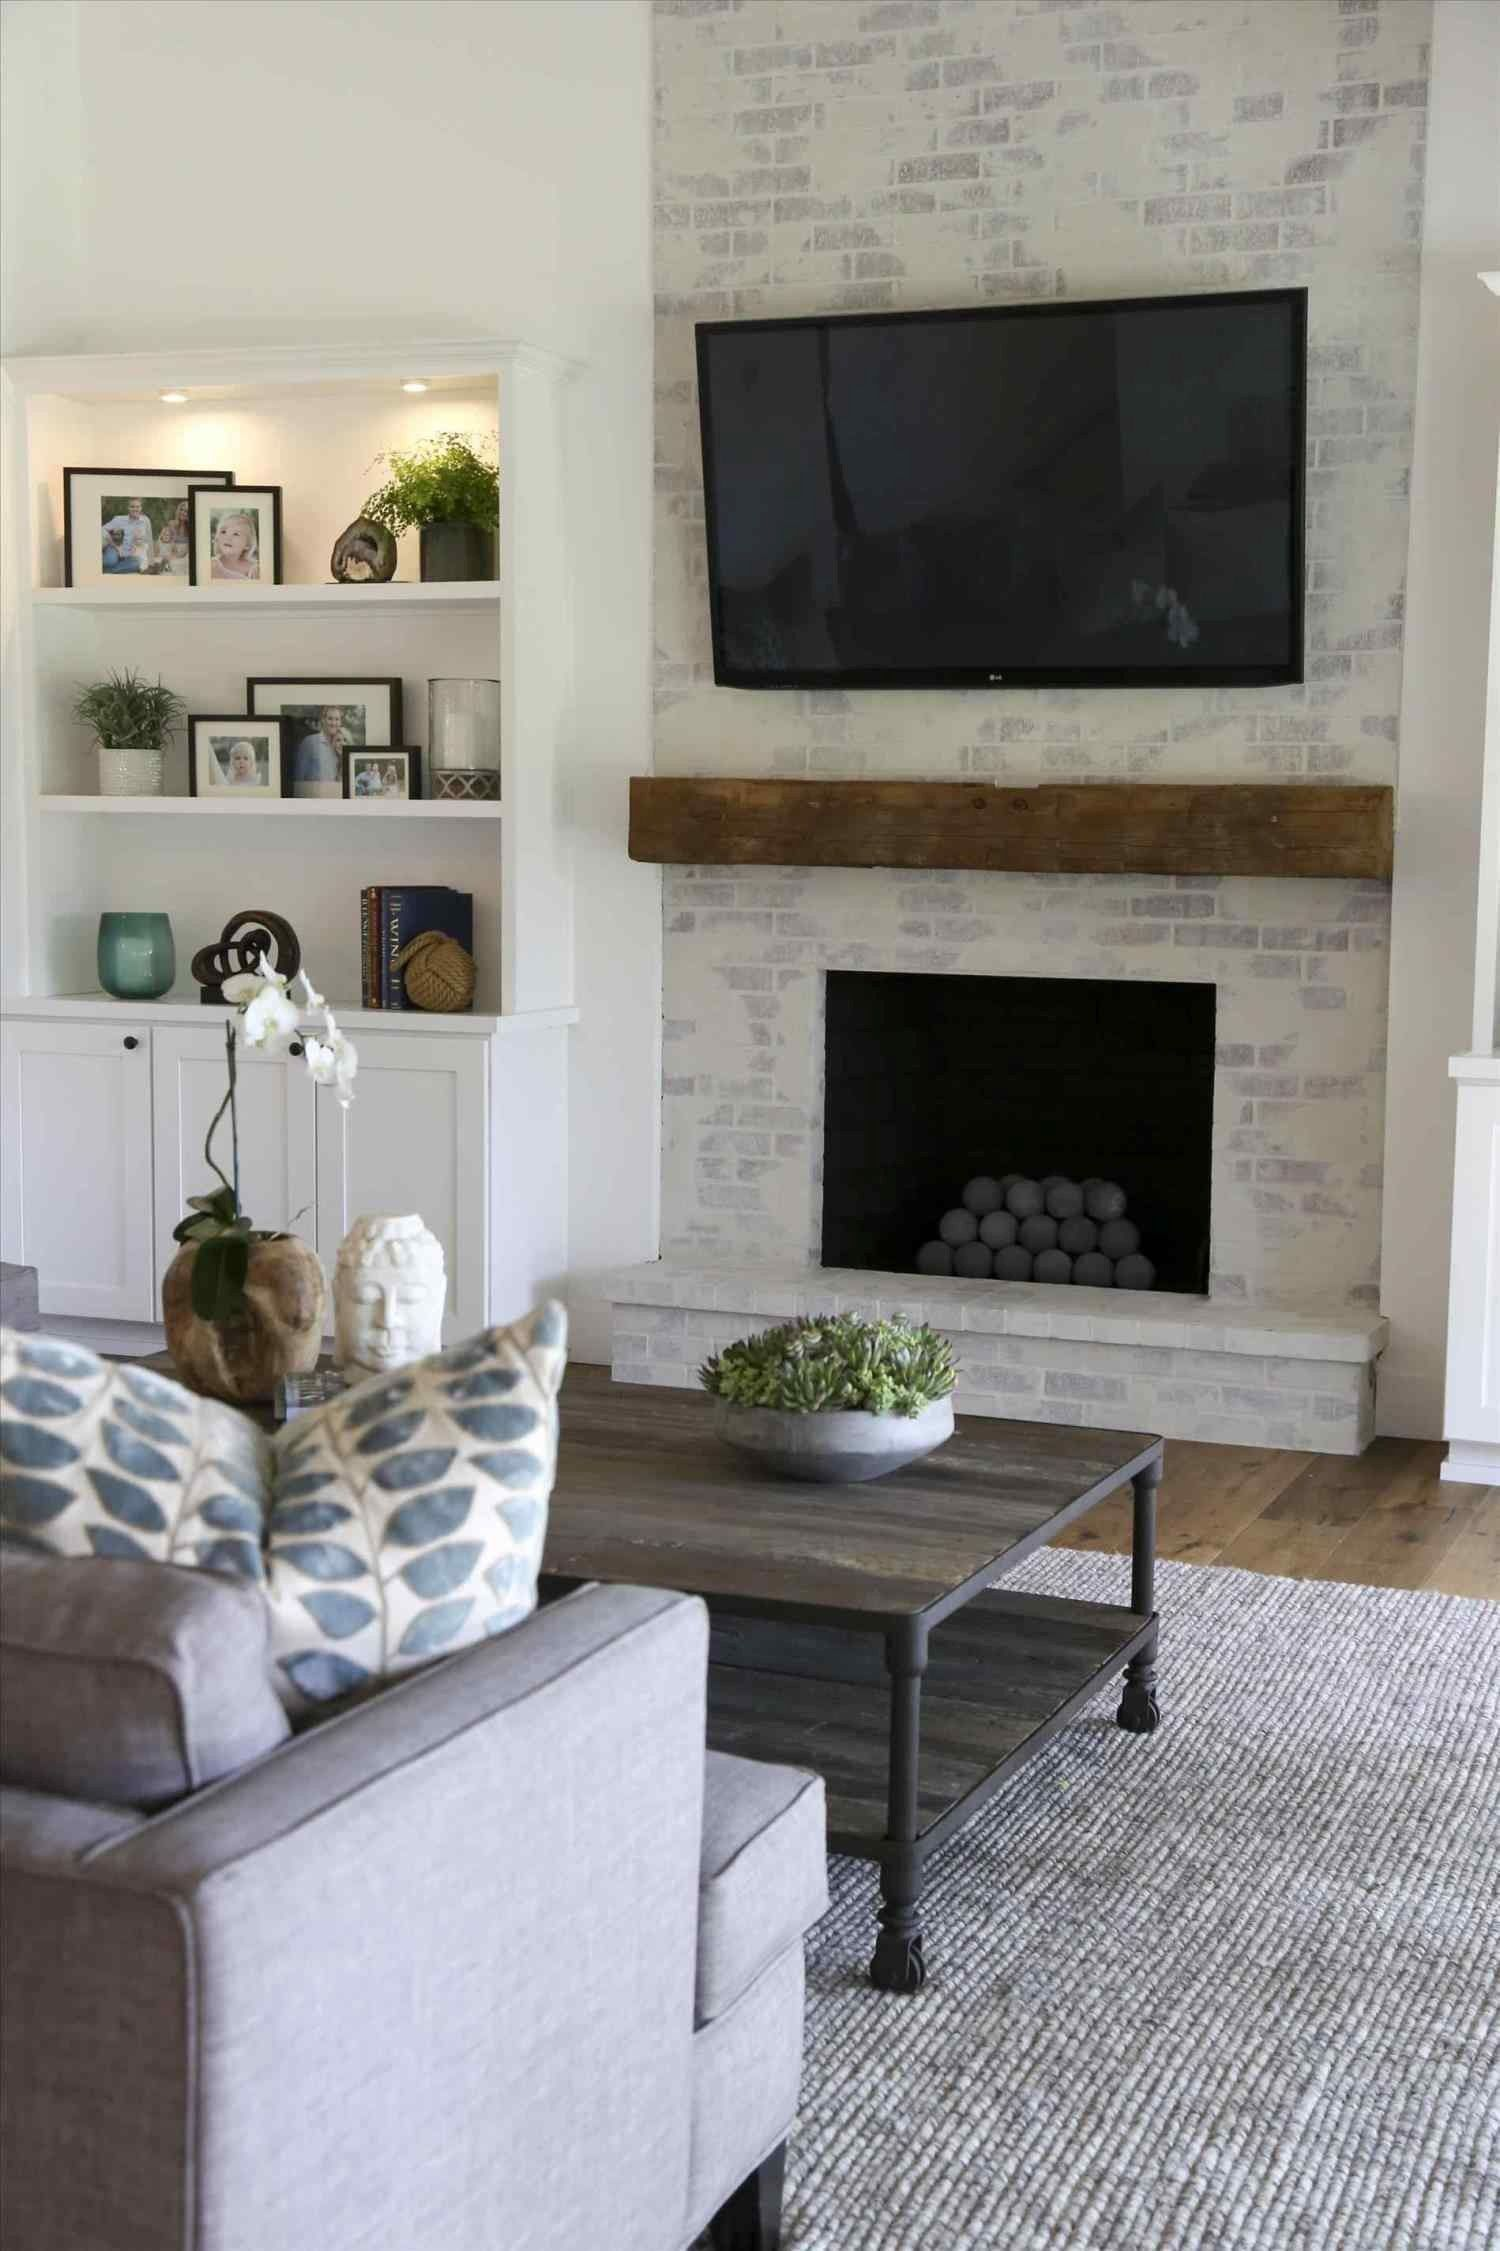 Joanna Gaines Fireplace Inspirational Design Makeover Fixer Upper